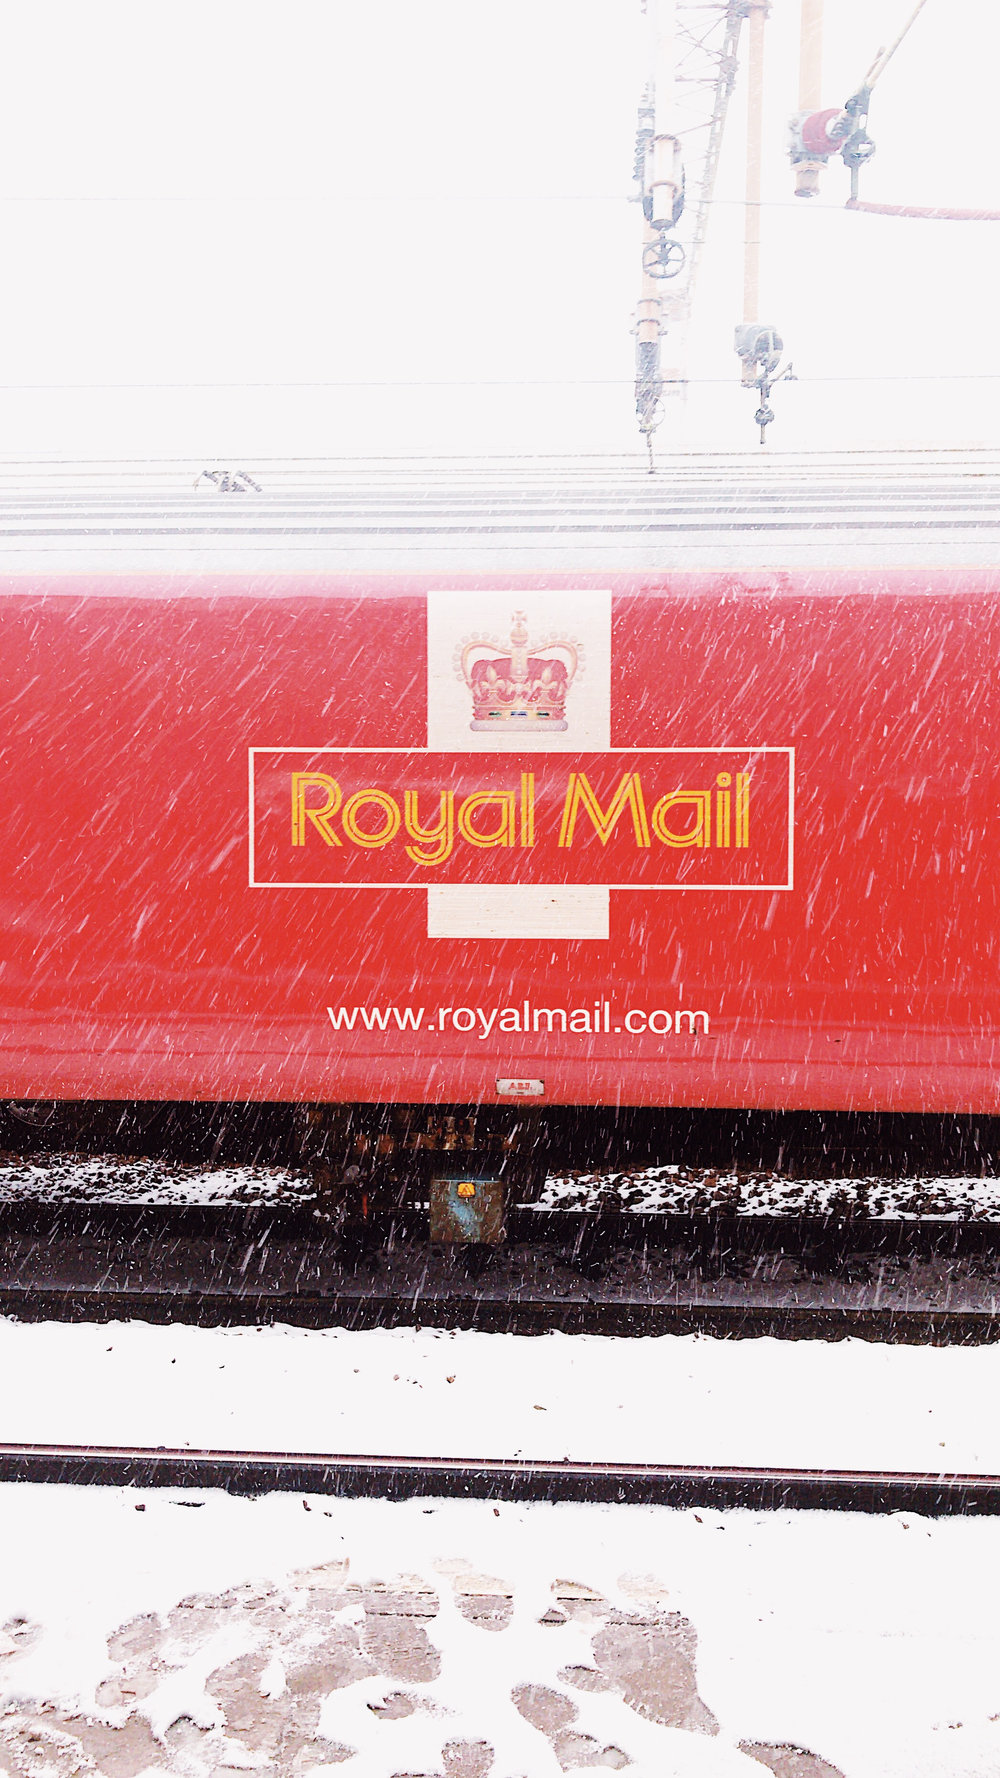 Royal Mail Train at Northampton